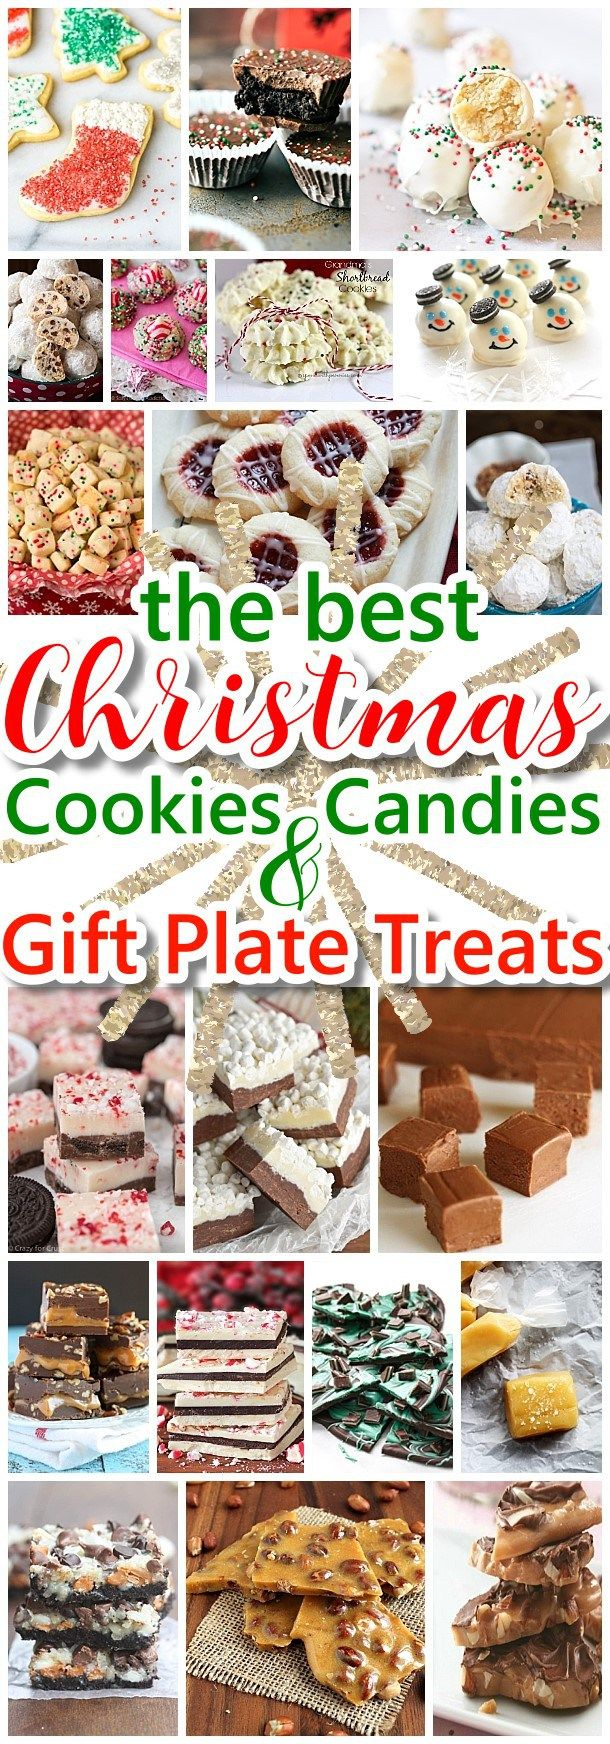 The BEST Christmas Cookies, Fudge, Candy, Barks and Brittles Recipes - Favorites for Holiday Treats Gift Plates and Goodies Bags! - Dreaming in DIY